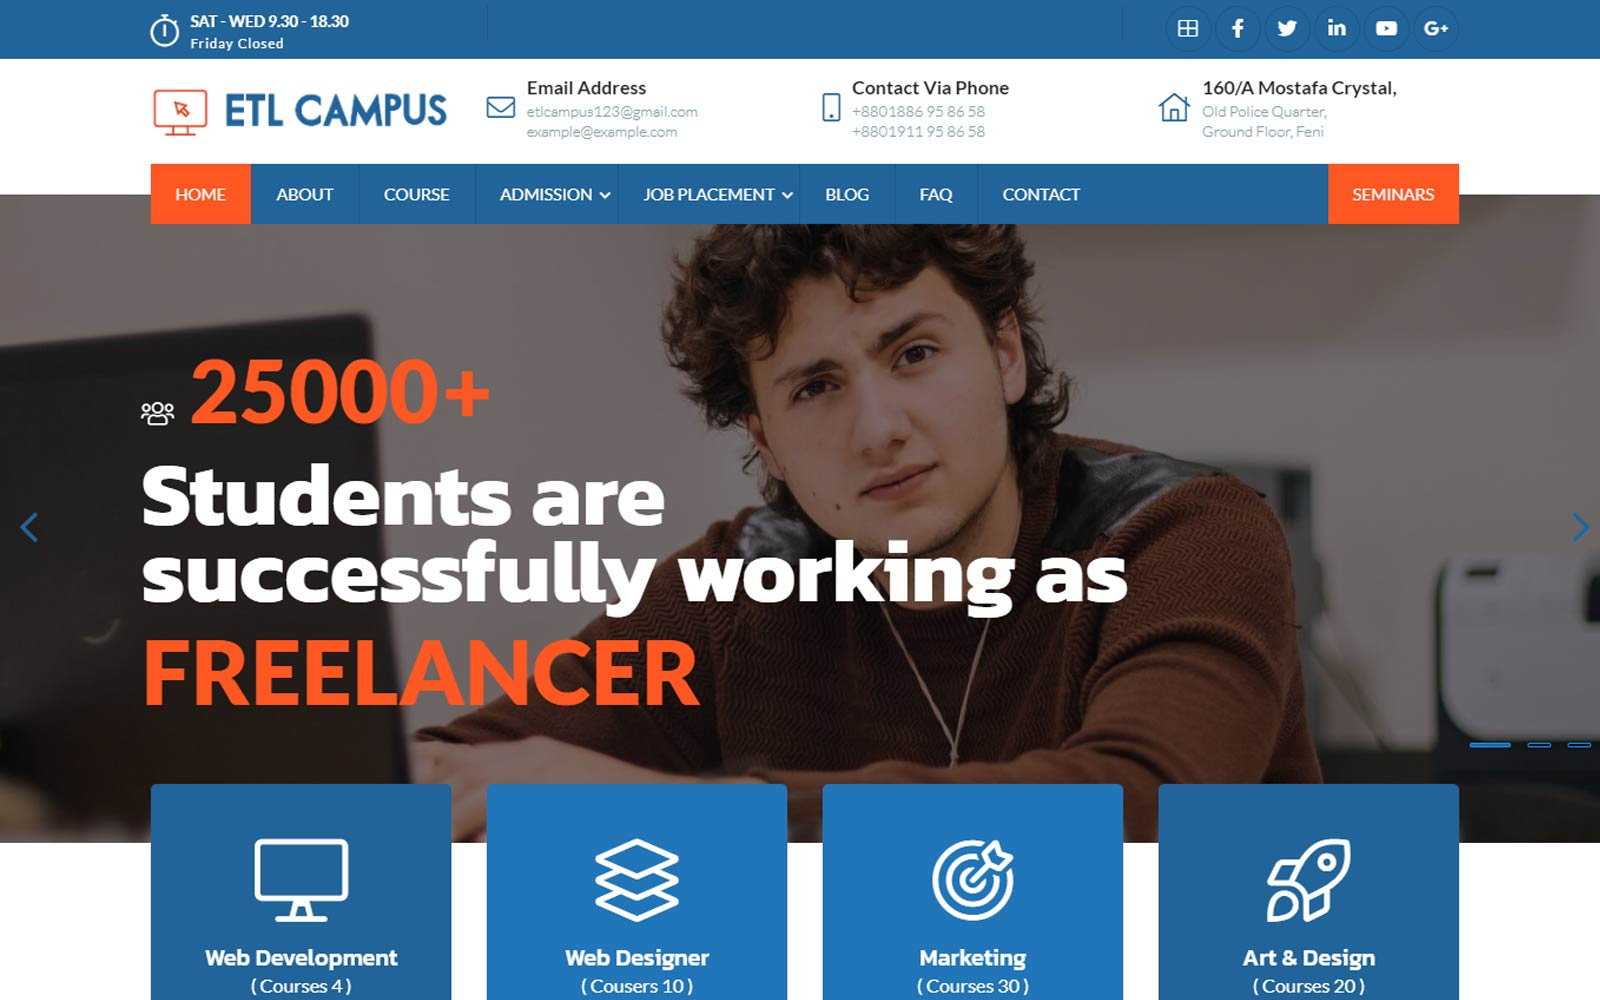 EtlCampus - Online Course & Education Fully Responsive Creative Bootstrap Website template